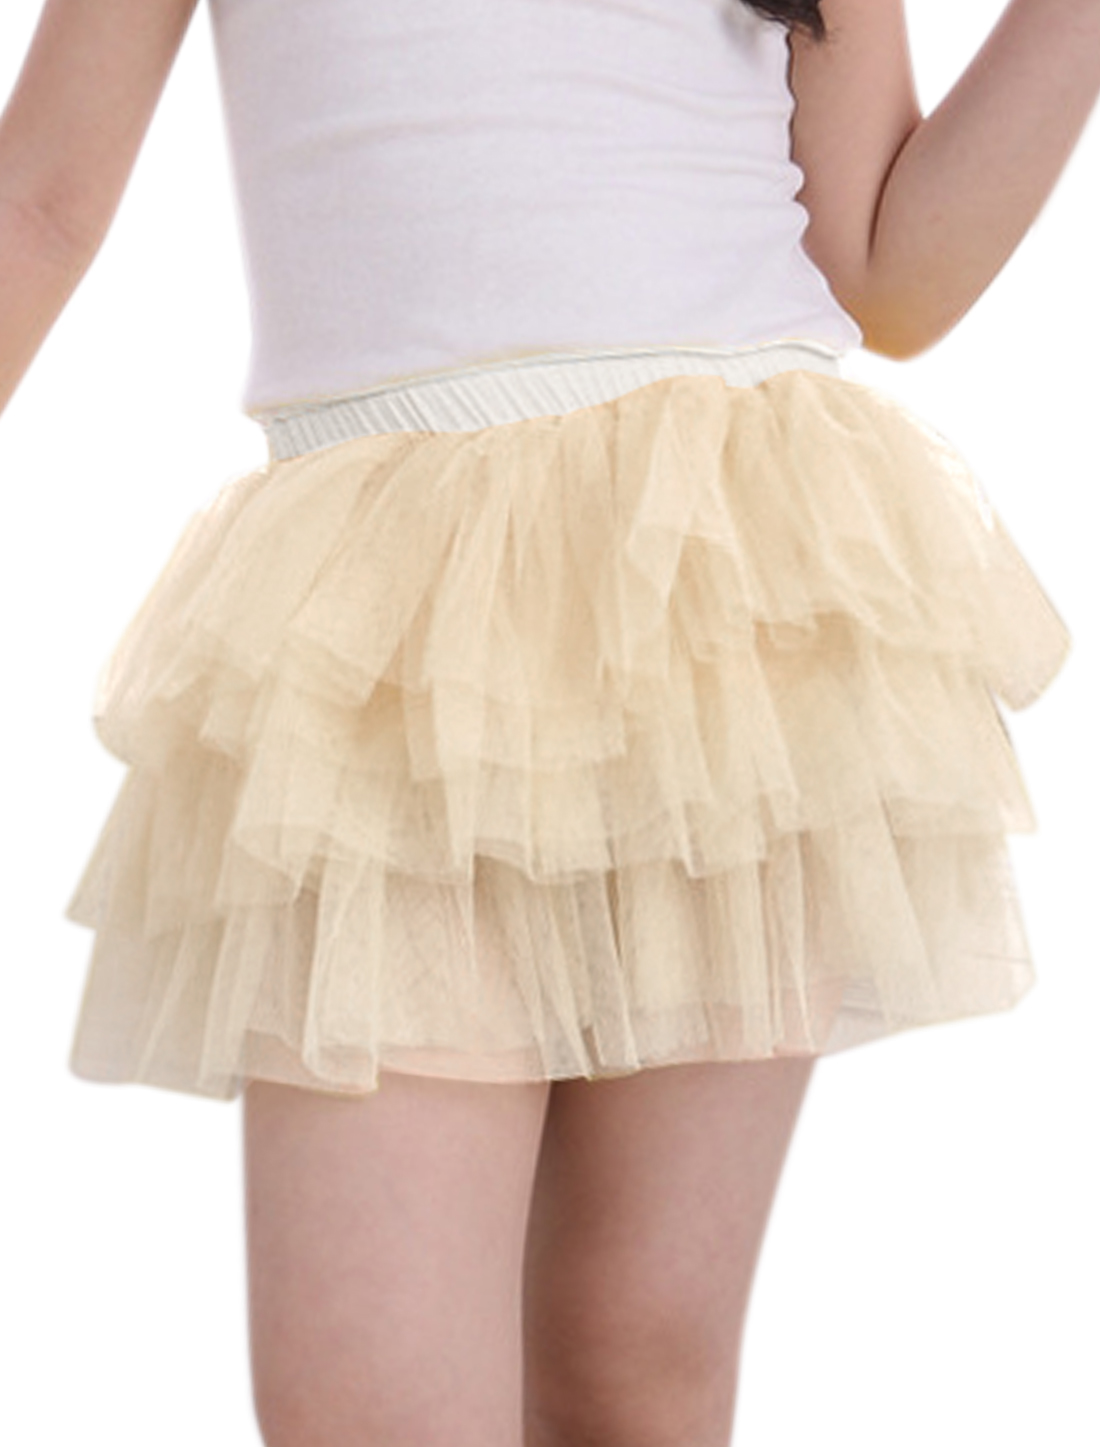 Girls Elastic Waist Mesh Panel Tiered A Line Skirt Beige 2T